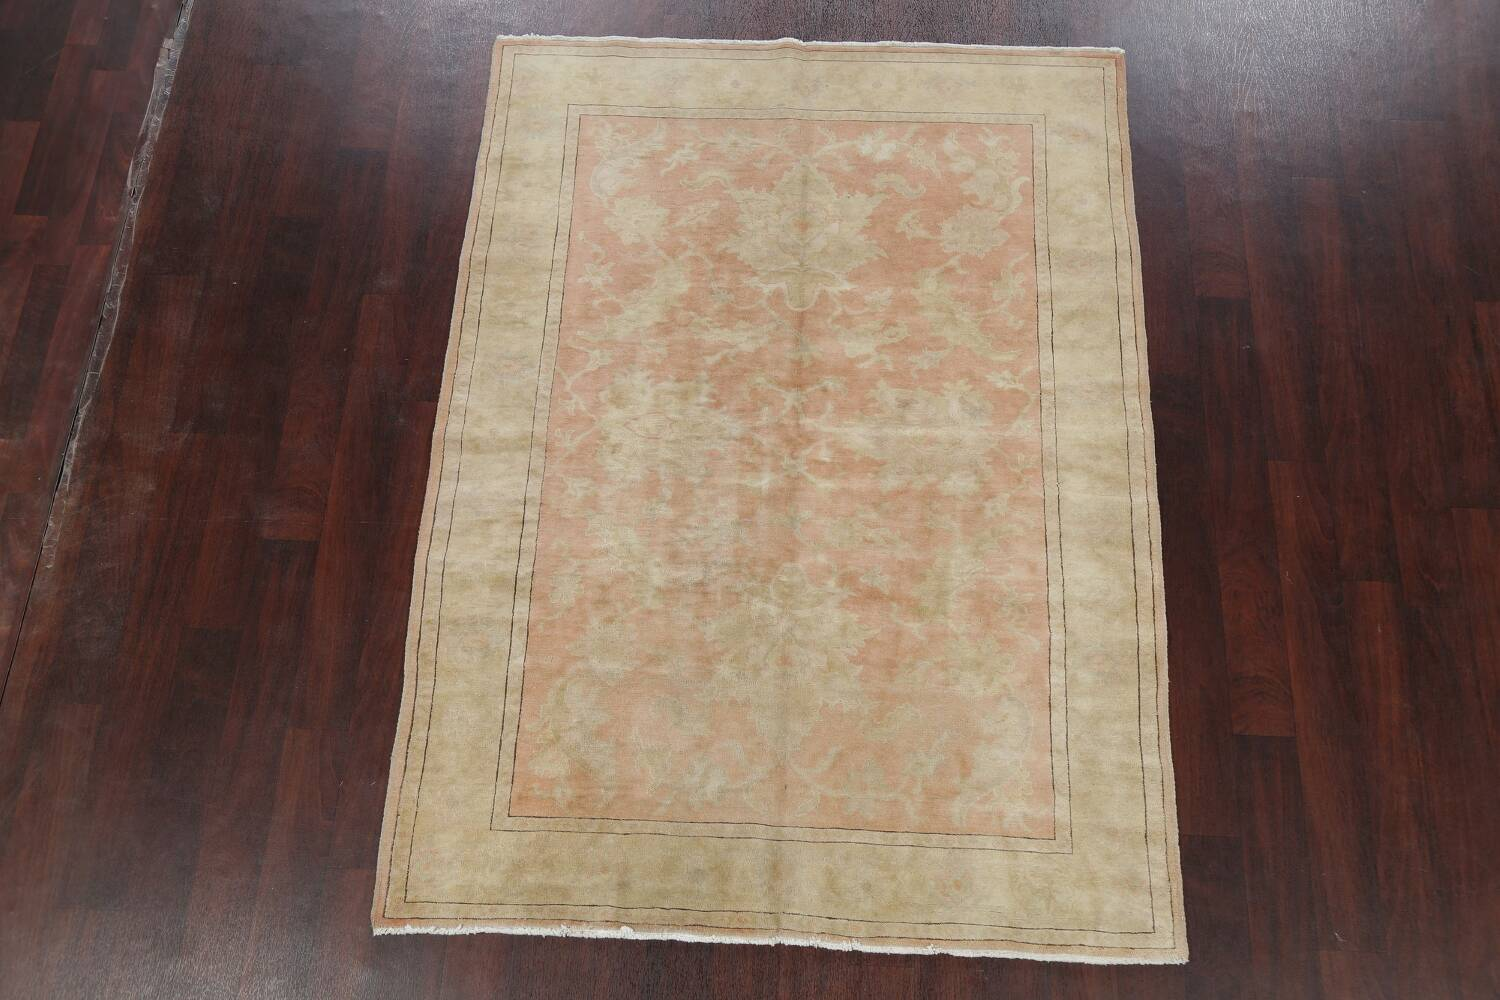 Vegetable Dye Antique Coral Peach Egyptian Area Rug 5x7 image 2